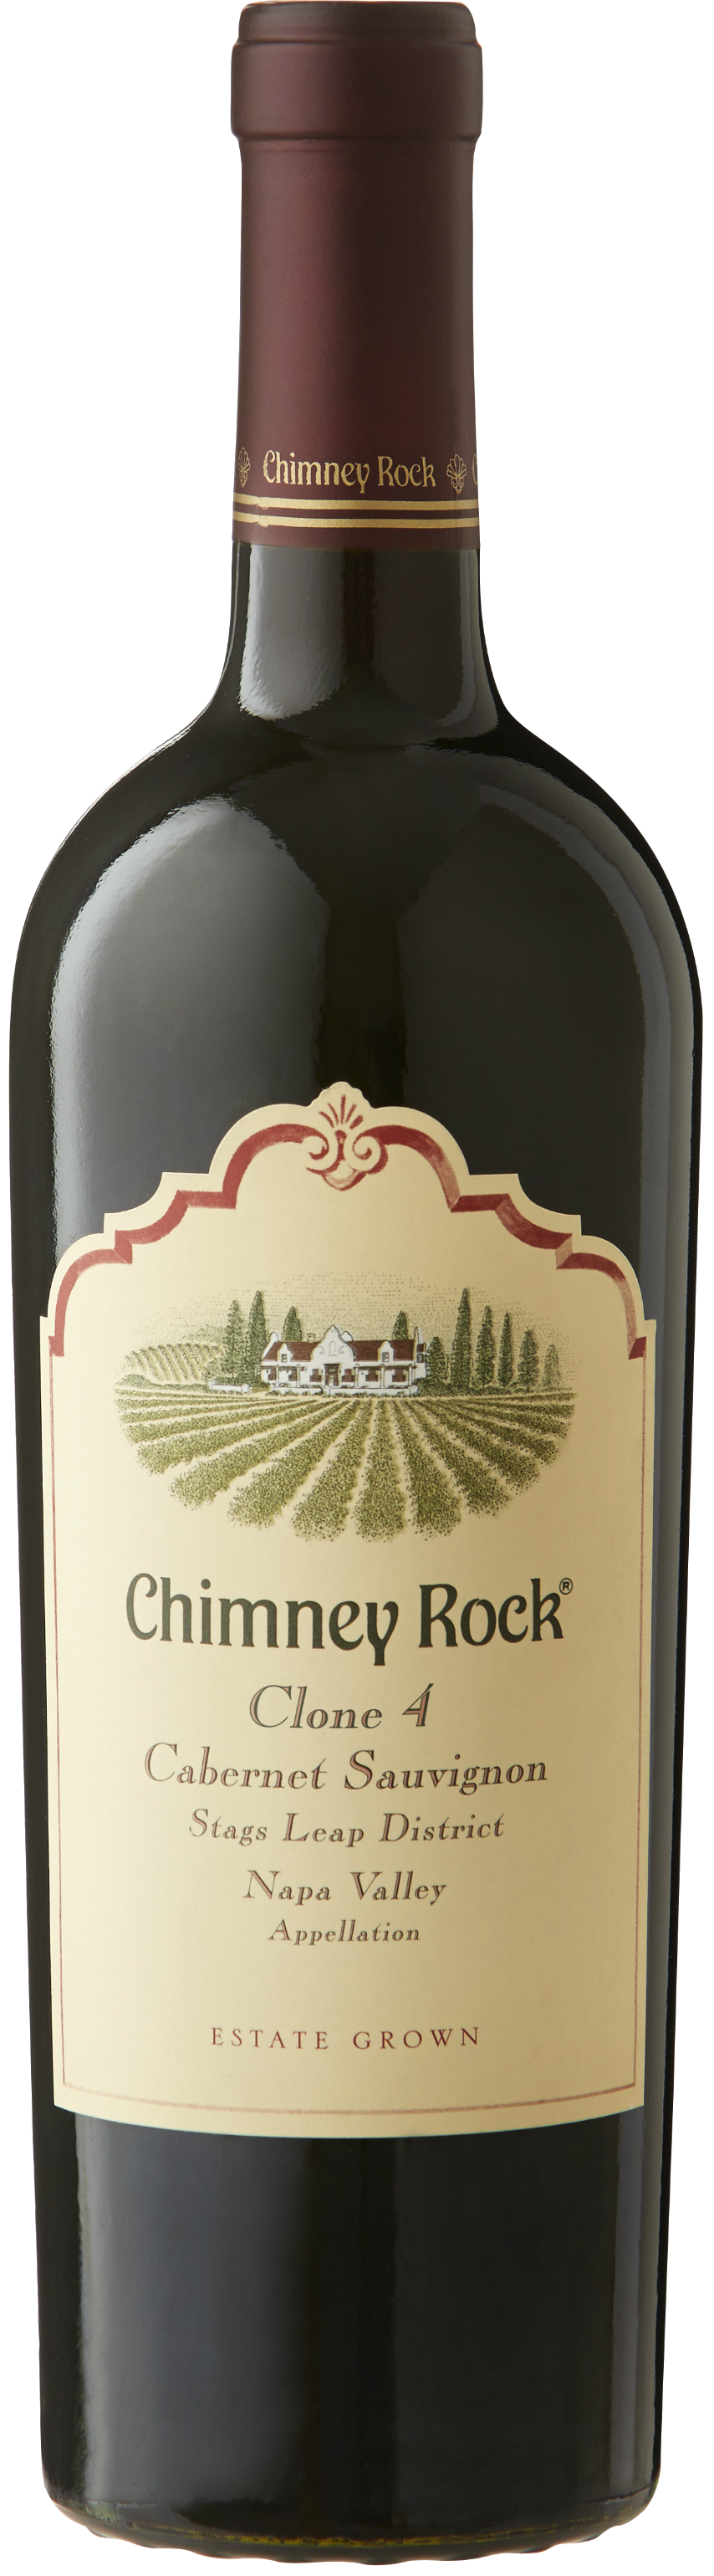 Chimney Rock Clone 4 Cabernet Sauvignon Stags Leap District 2013